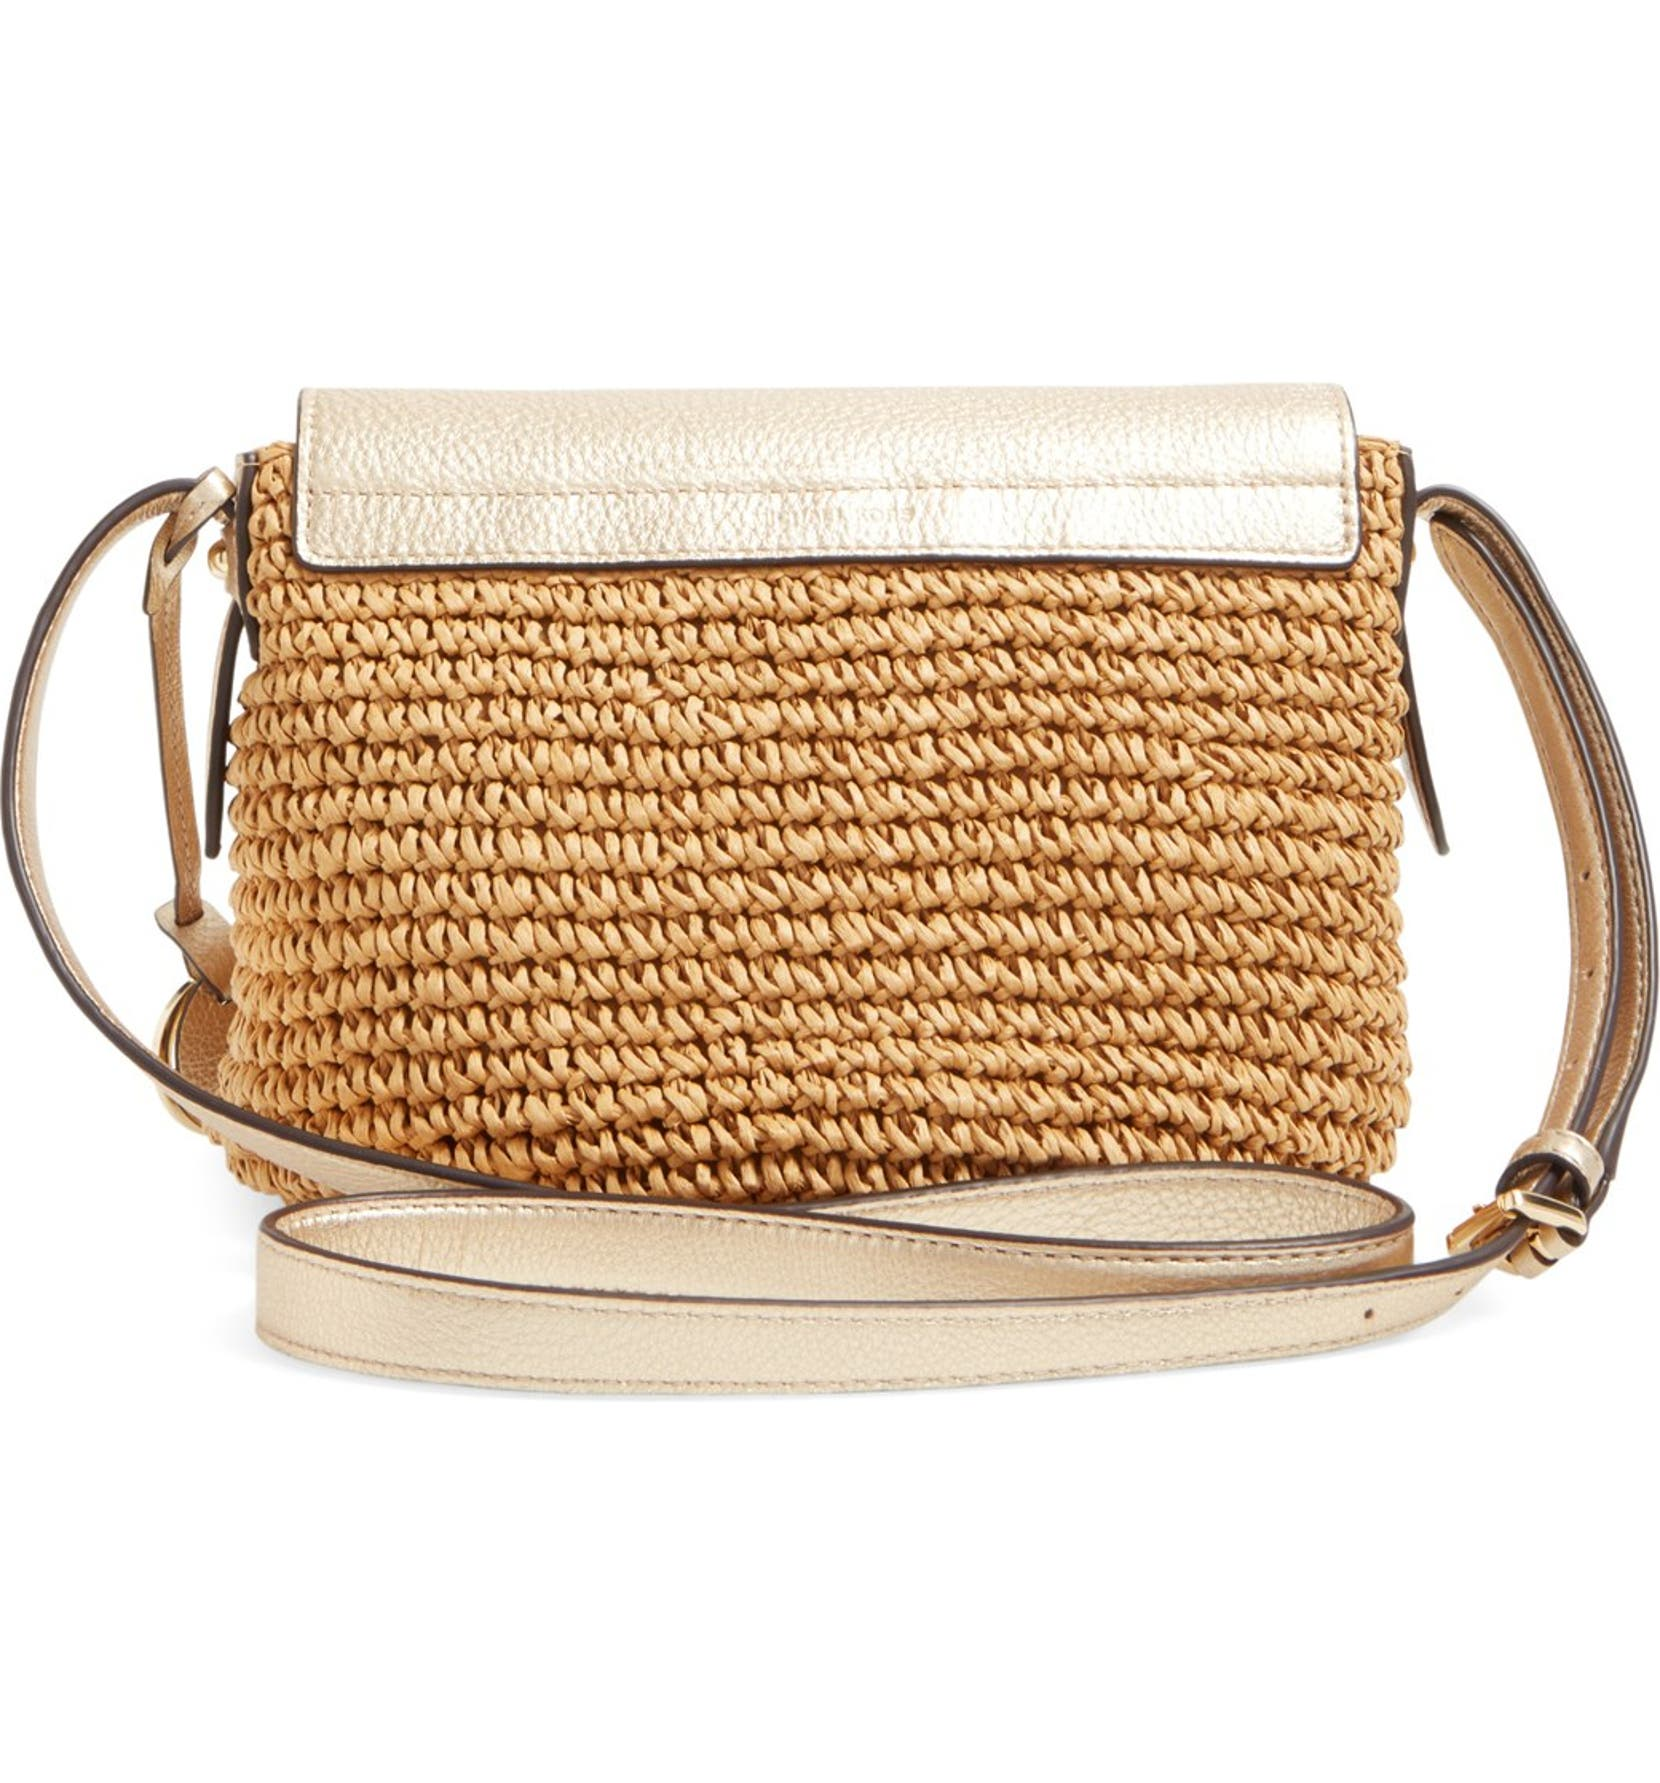 cb5052709 MICHAEL Michael Kors 'Medium Naomi' Straw Crossbody Bag | Nordstrom